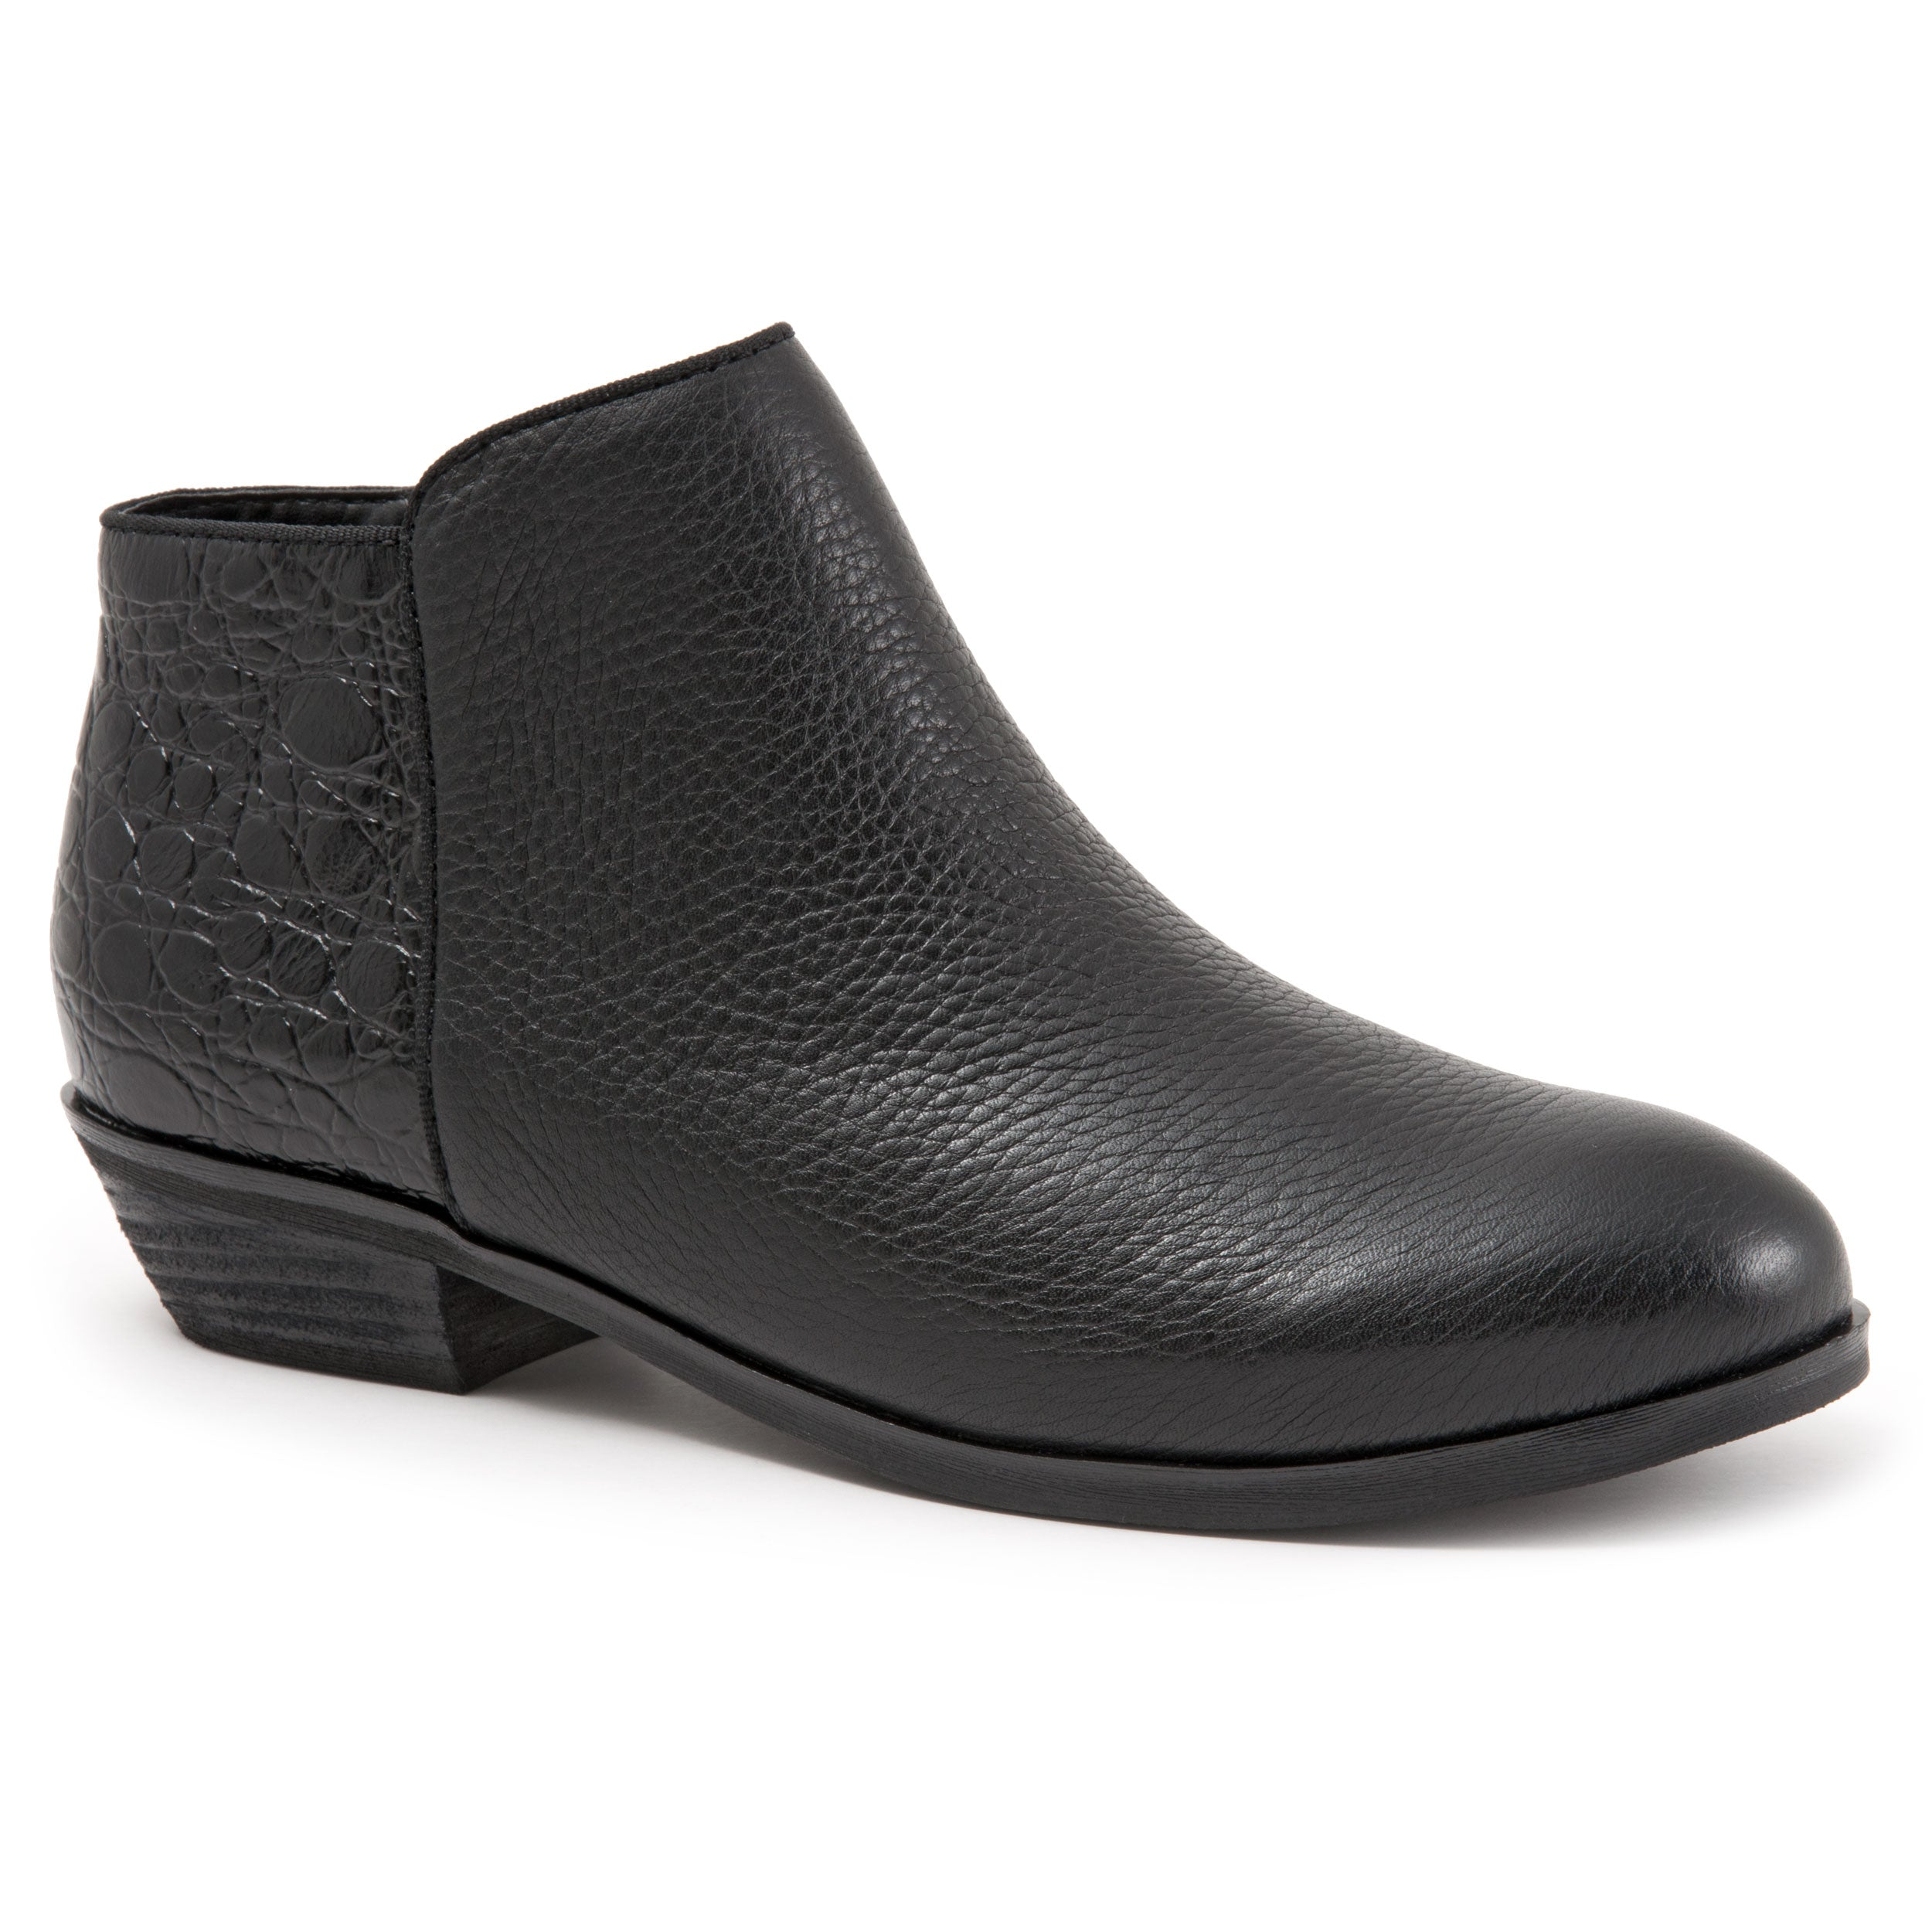 Rocklin Black Croc Ankle Boots